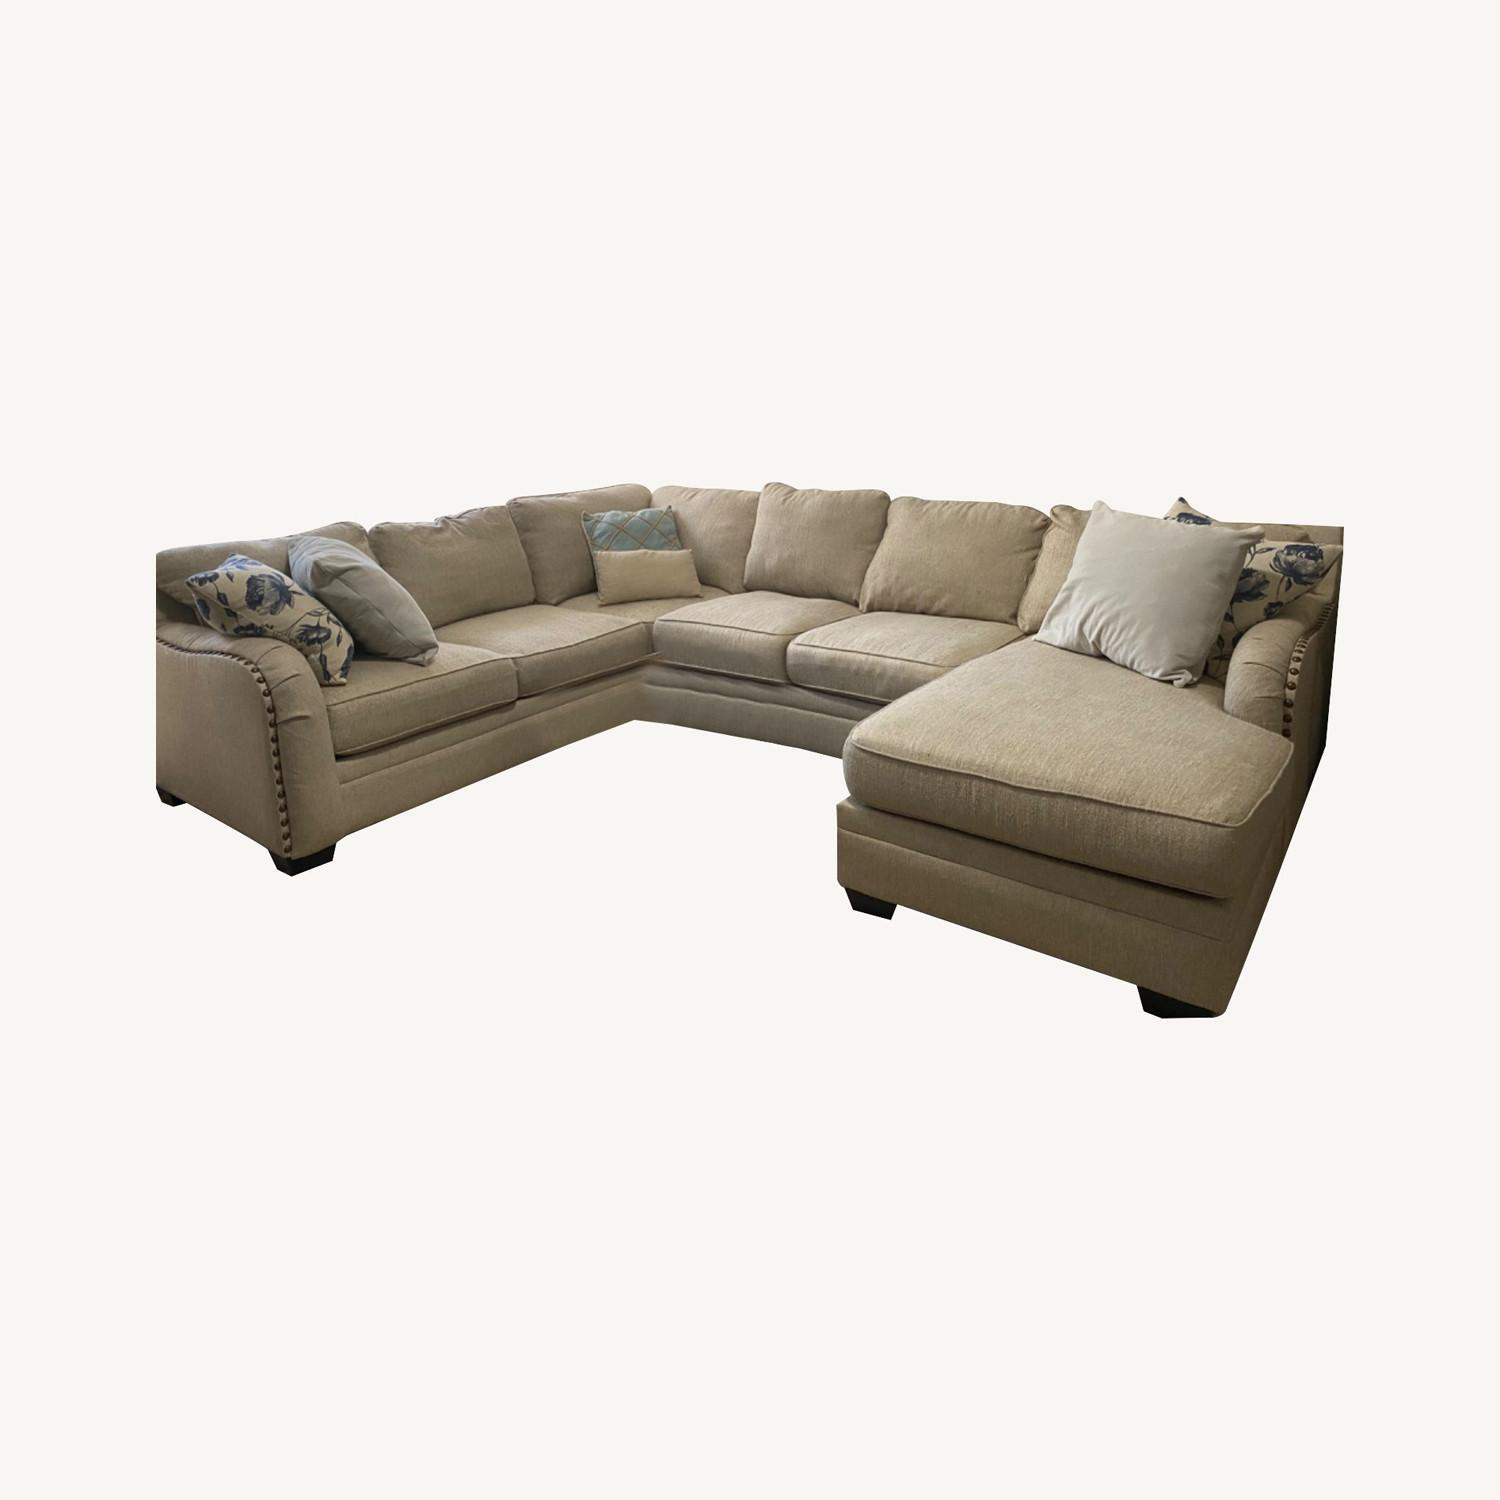 Ashley Home Luxora Beige 4-Piece Sectional Sofa - image-0